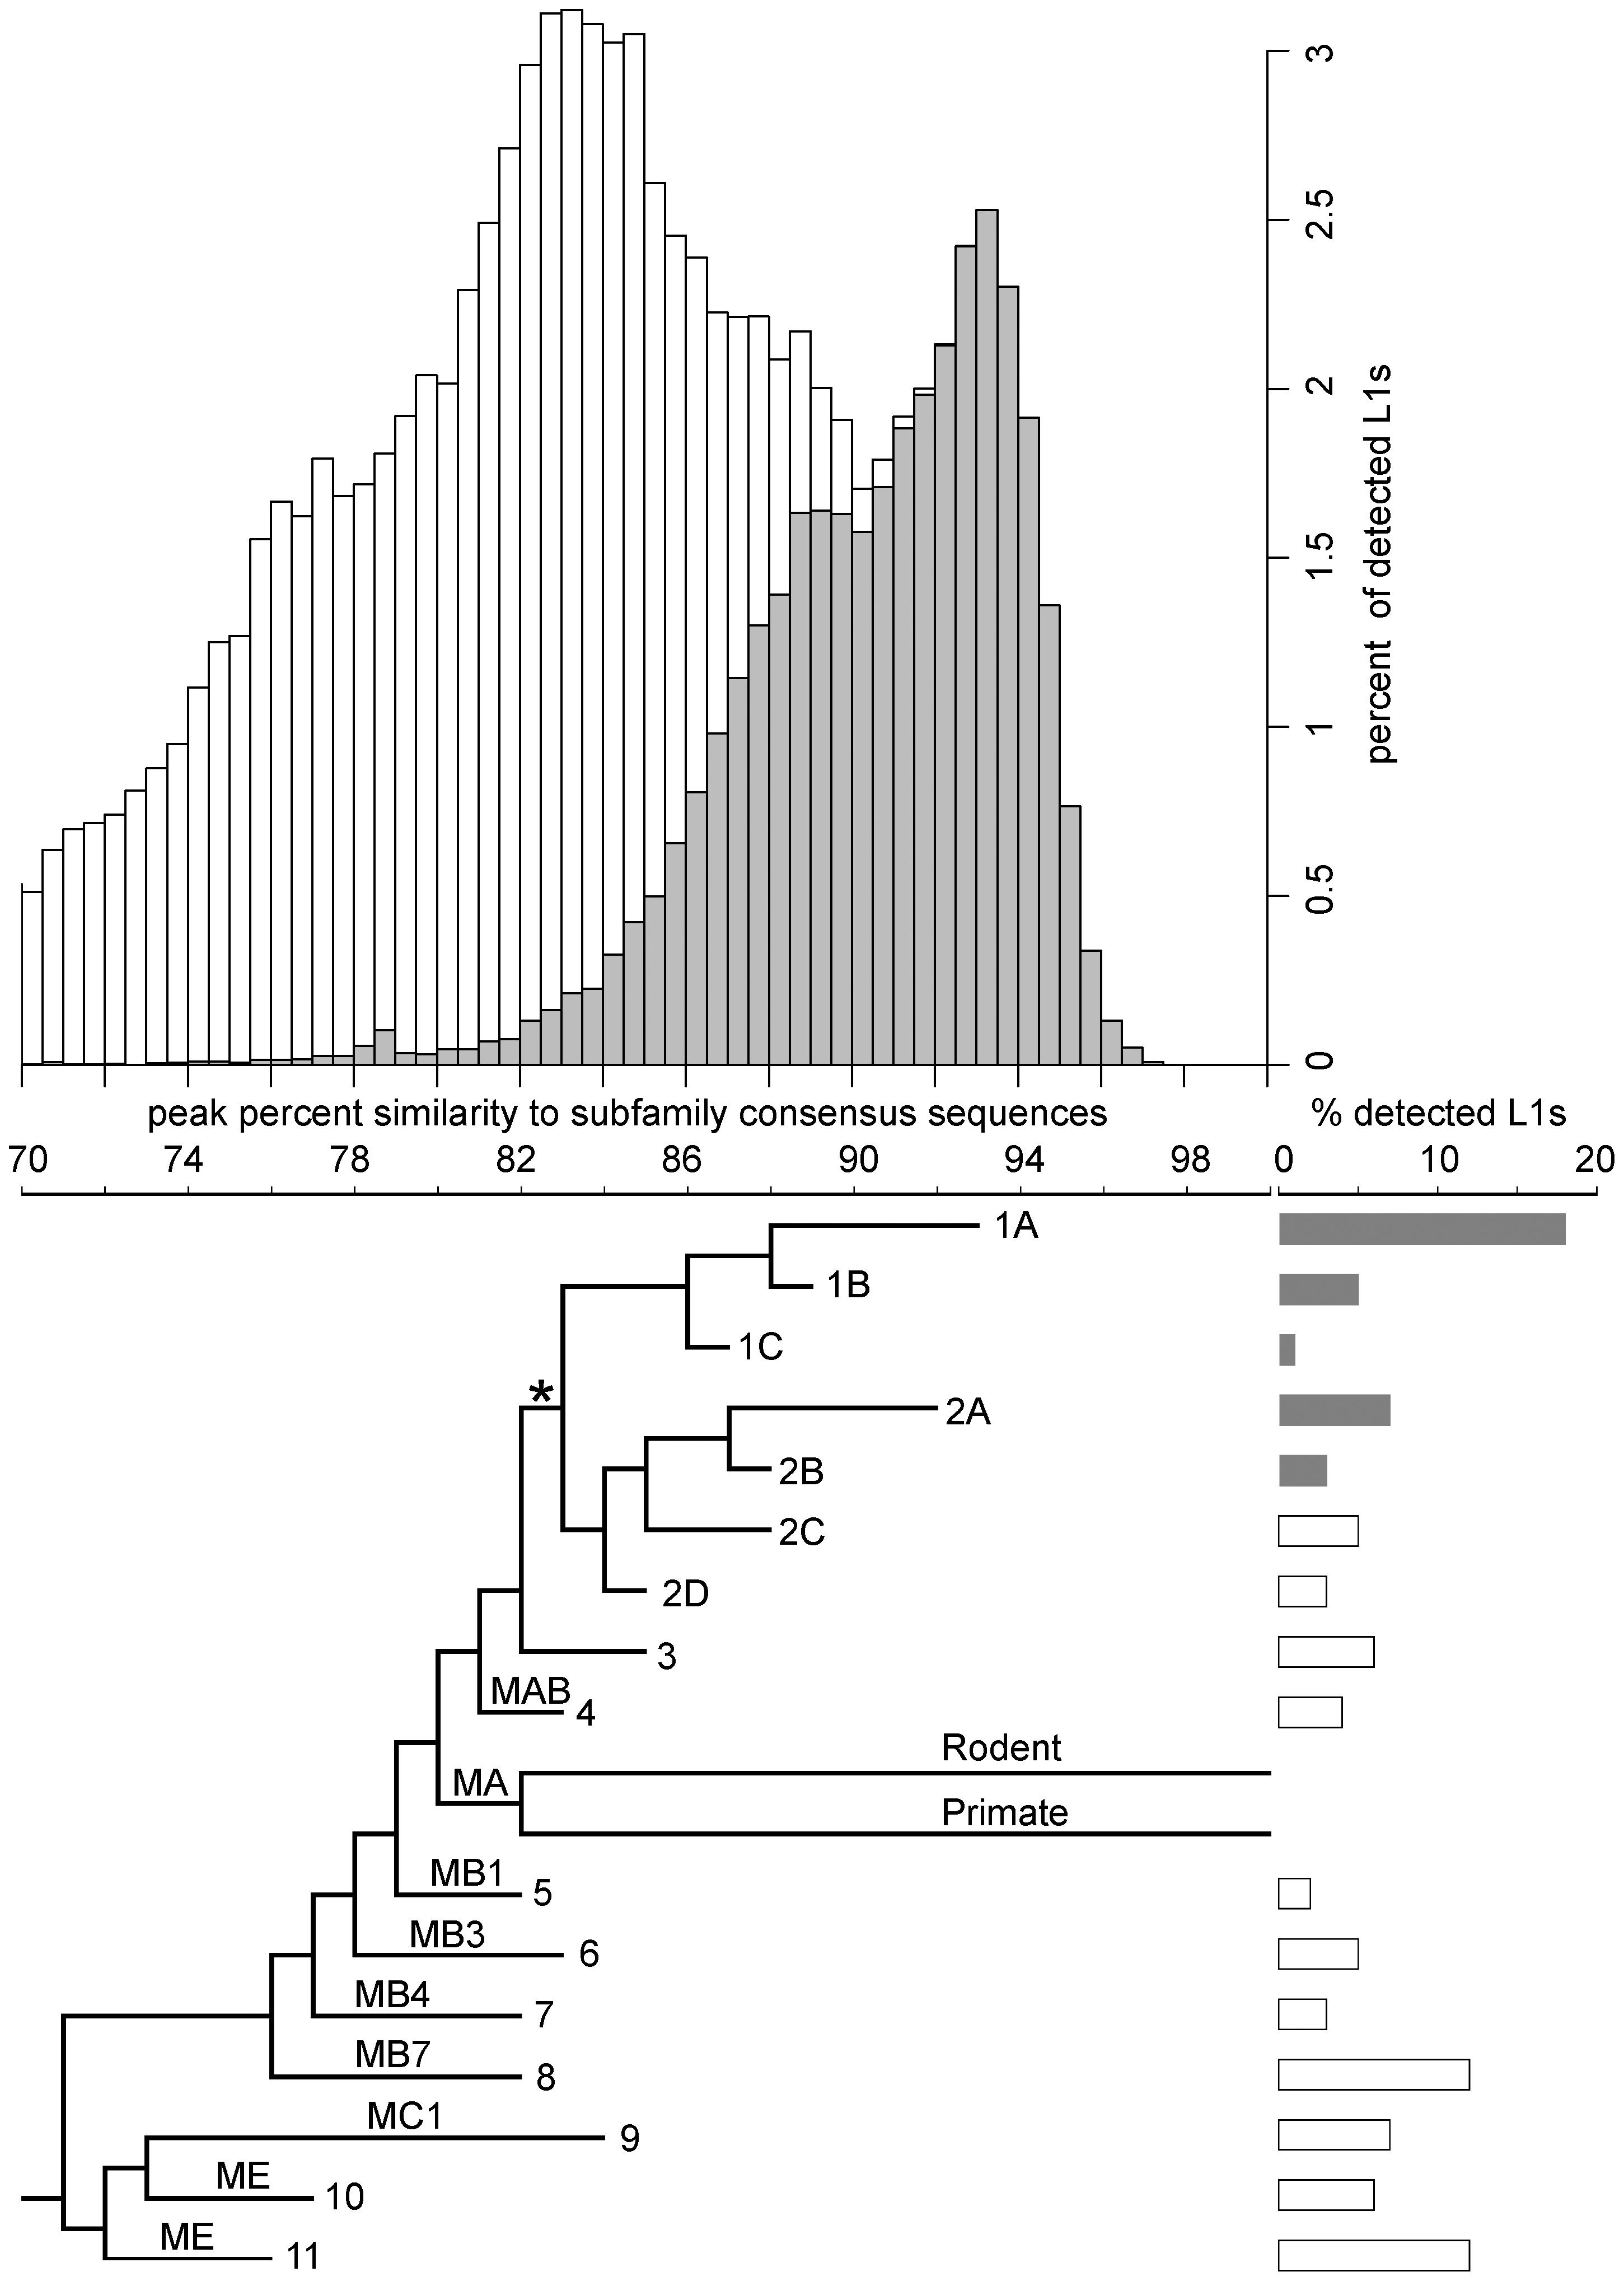 Age distribution and phylogeny of L1s in the megabat genome.